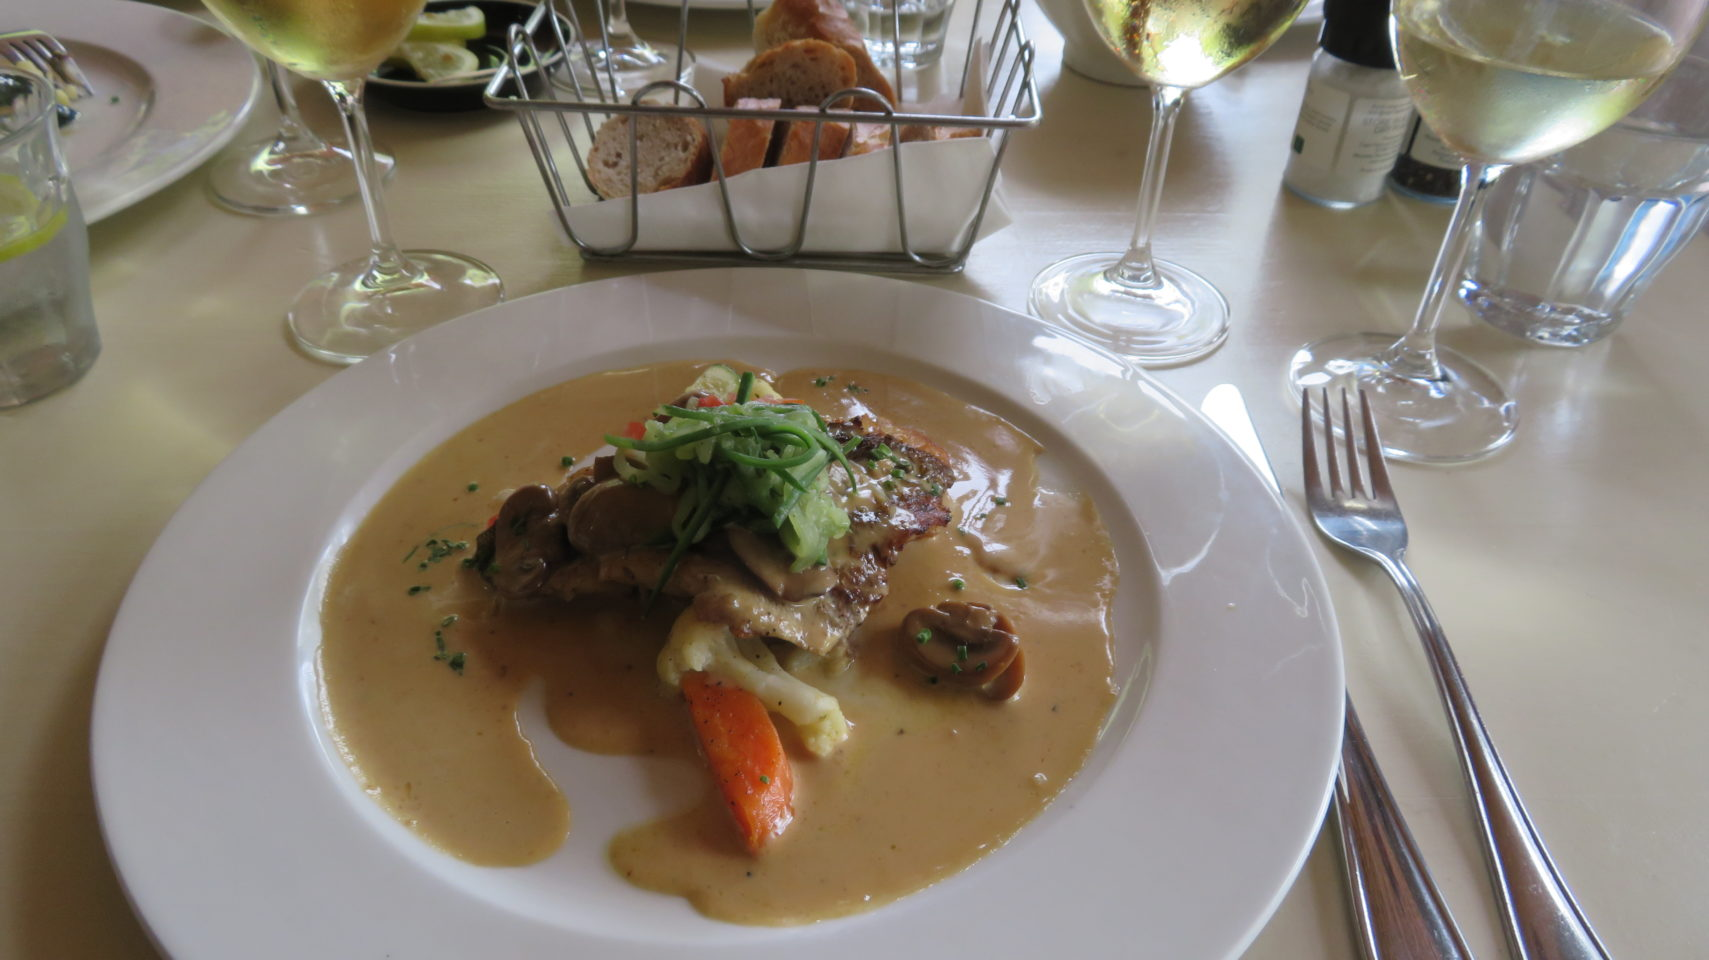 Superb Line Fish dish at Joostenberg Bistro in Stellenbosch, South Africa